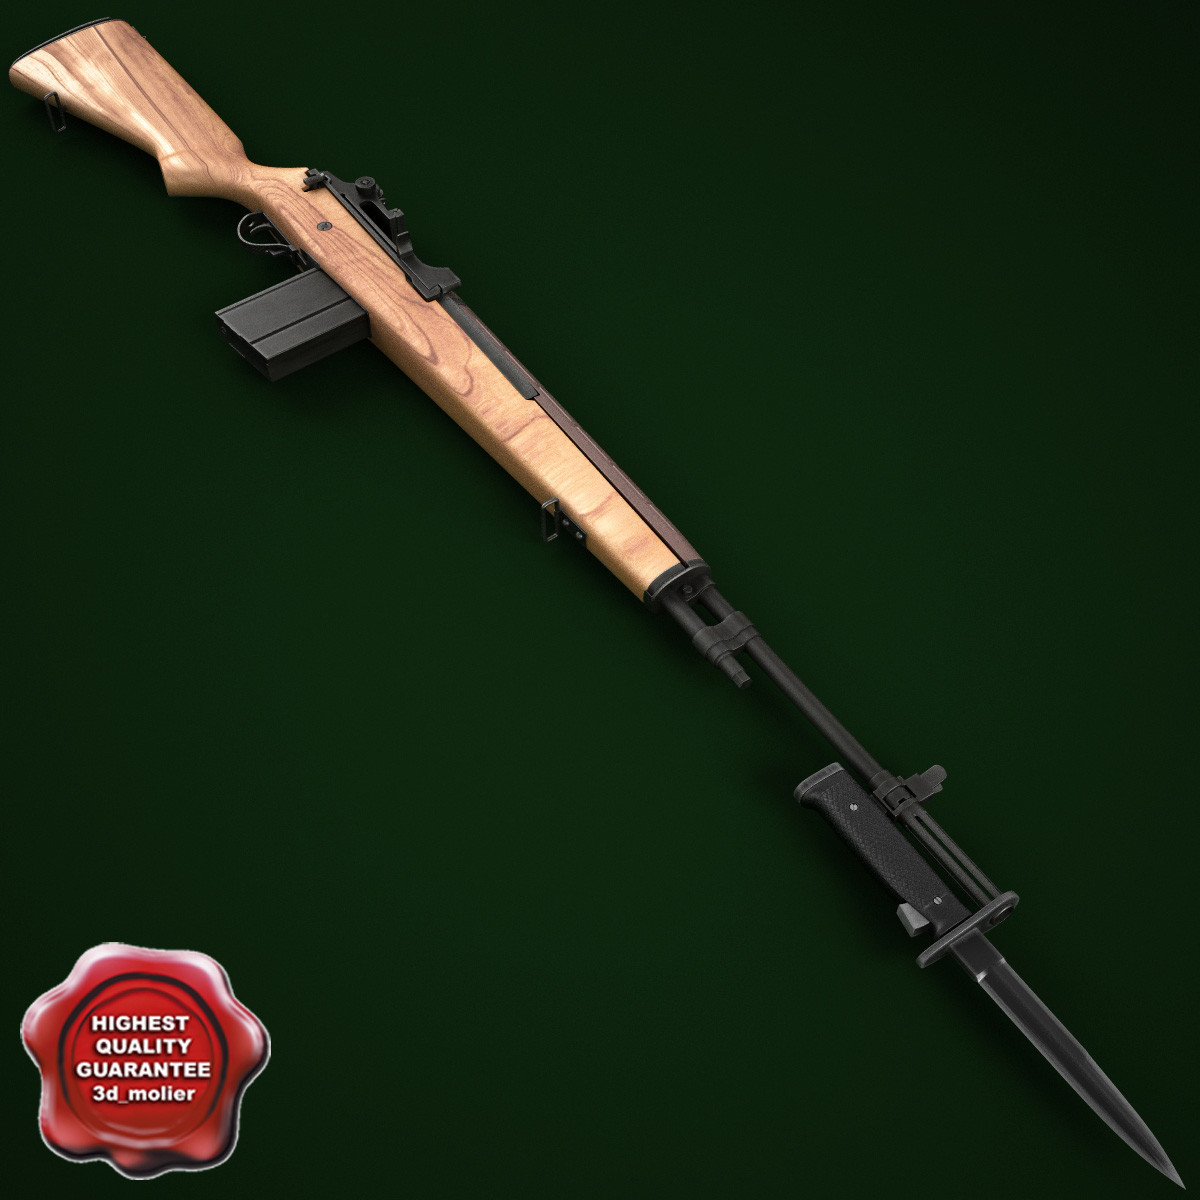 3d m14 rifle m6 bayonet